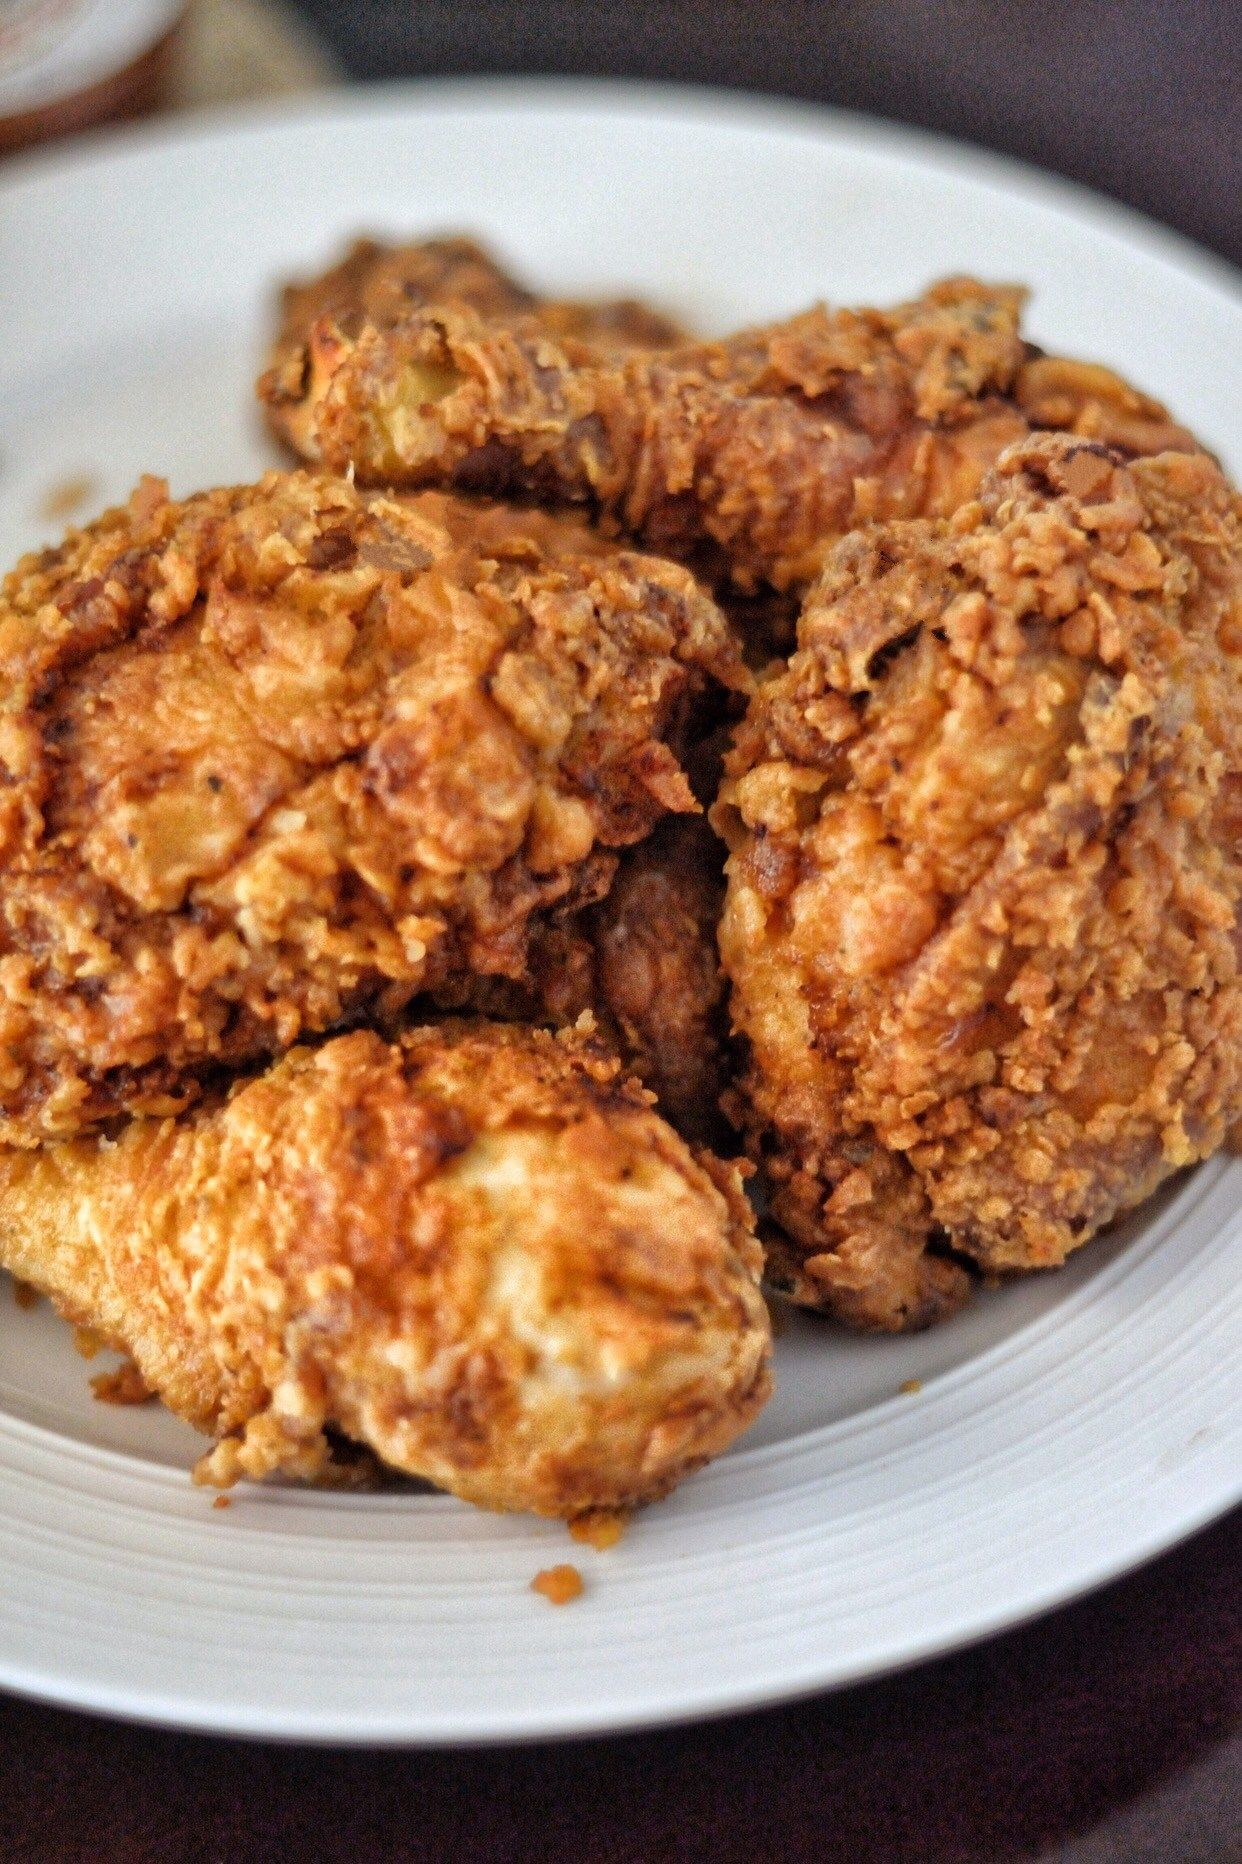 Southern Fried Chicken images